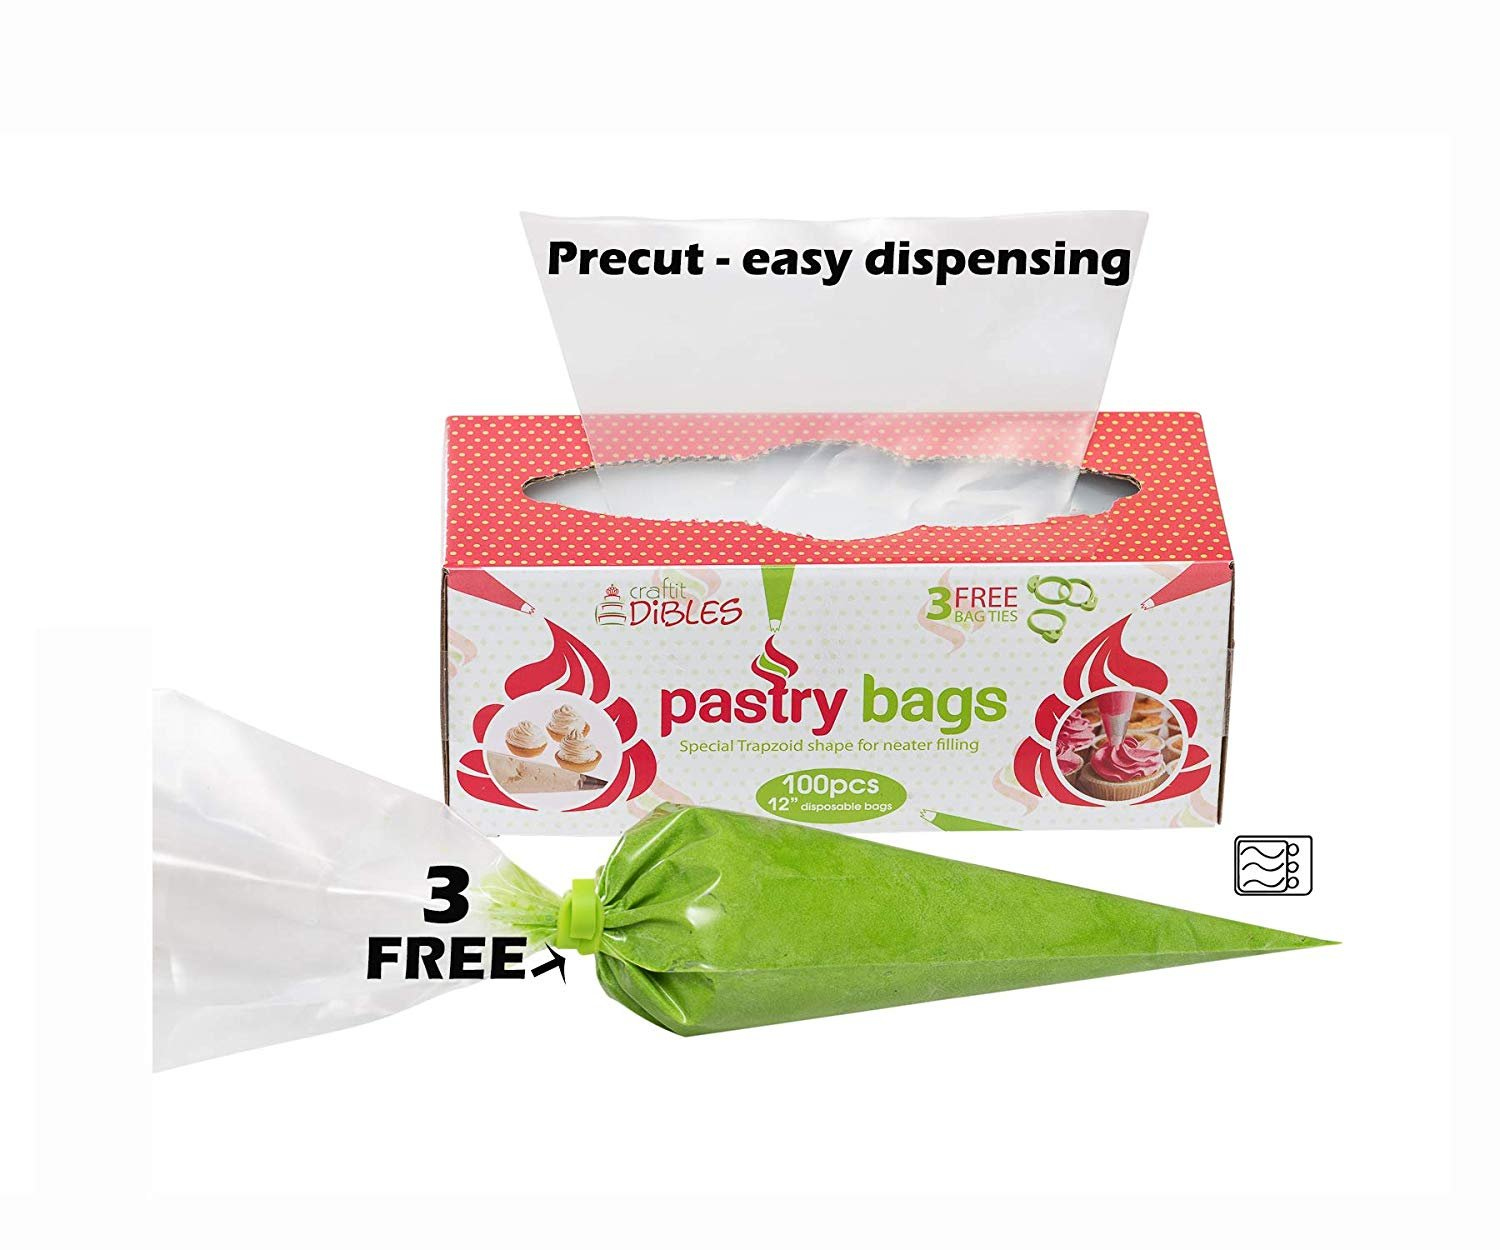 Piping-Bags-Disposable-100-Pack-12-Inch-Cake-Decorating-Pastry-Bag-Set thumbnail 11